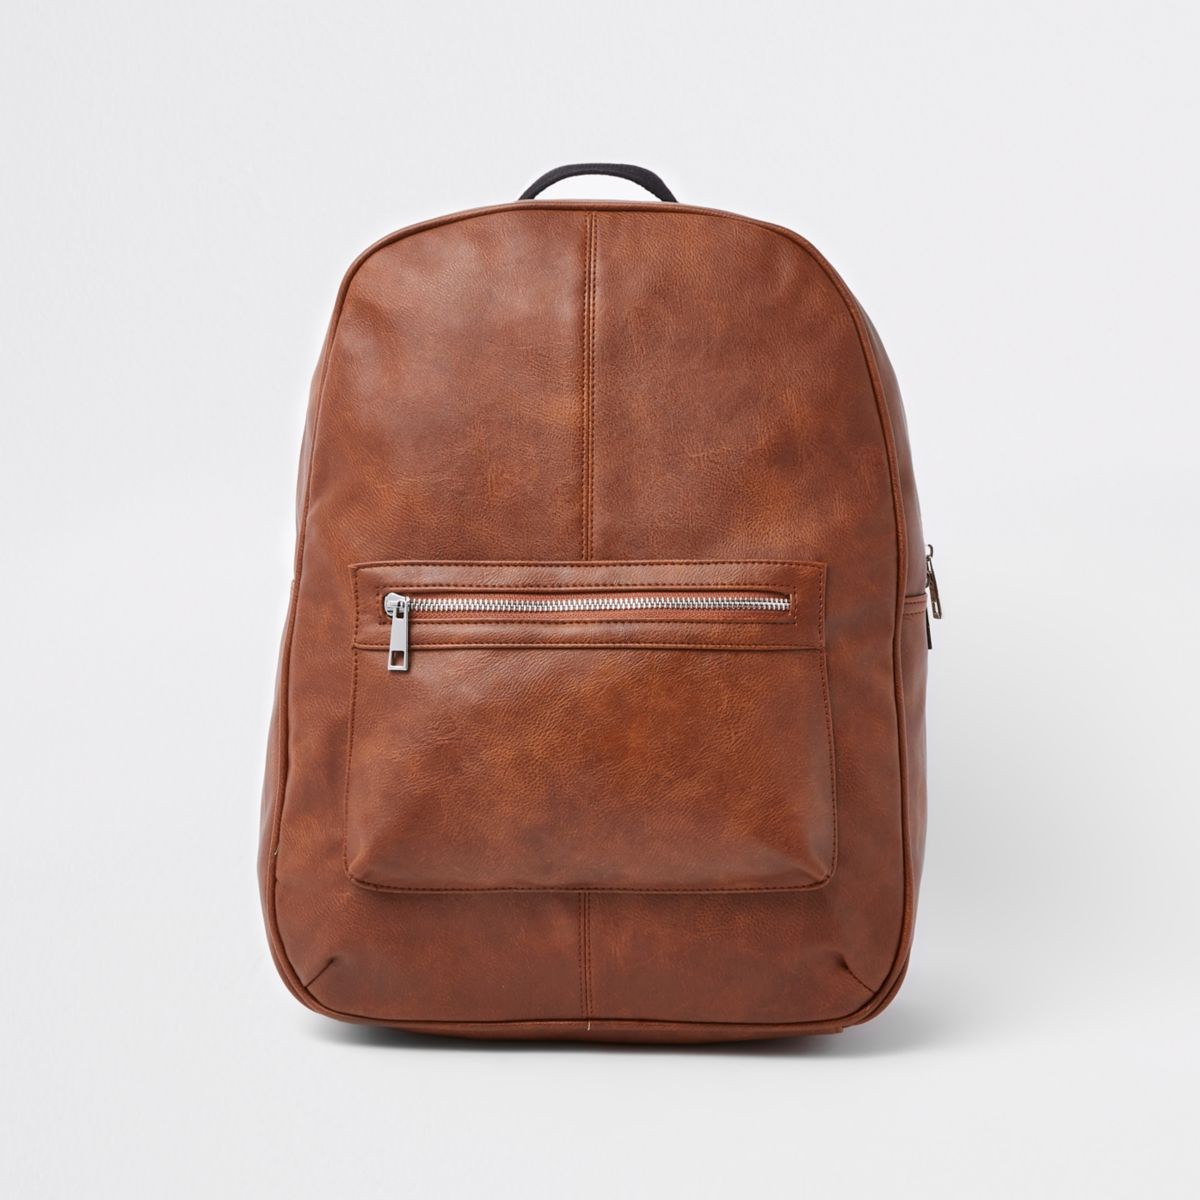 Brown faux leather front pocket backpack